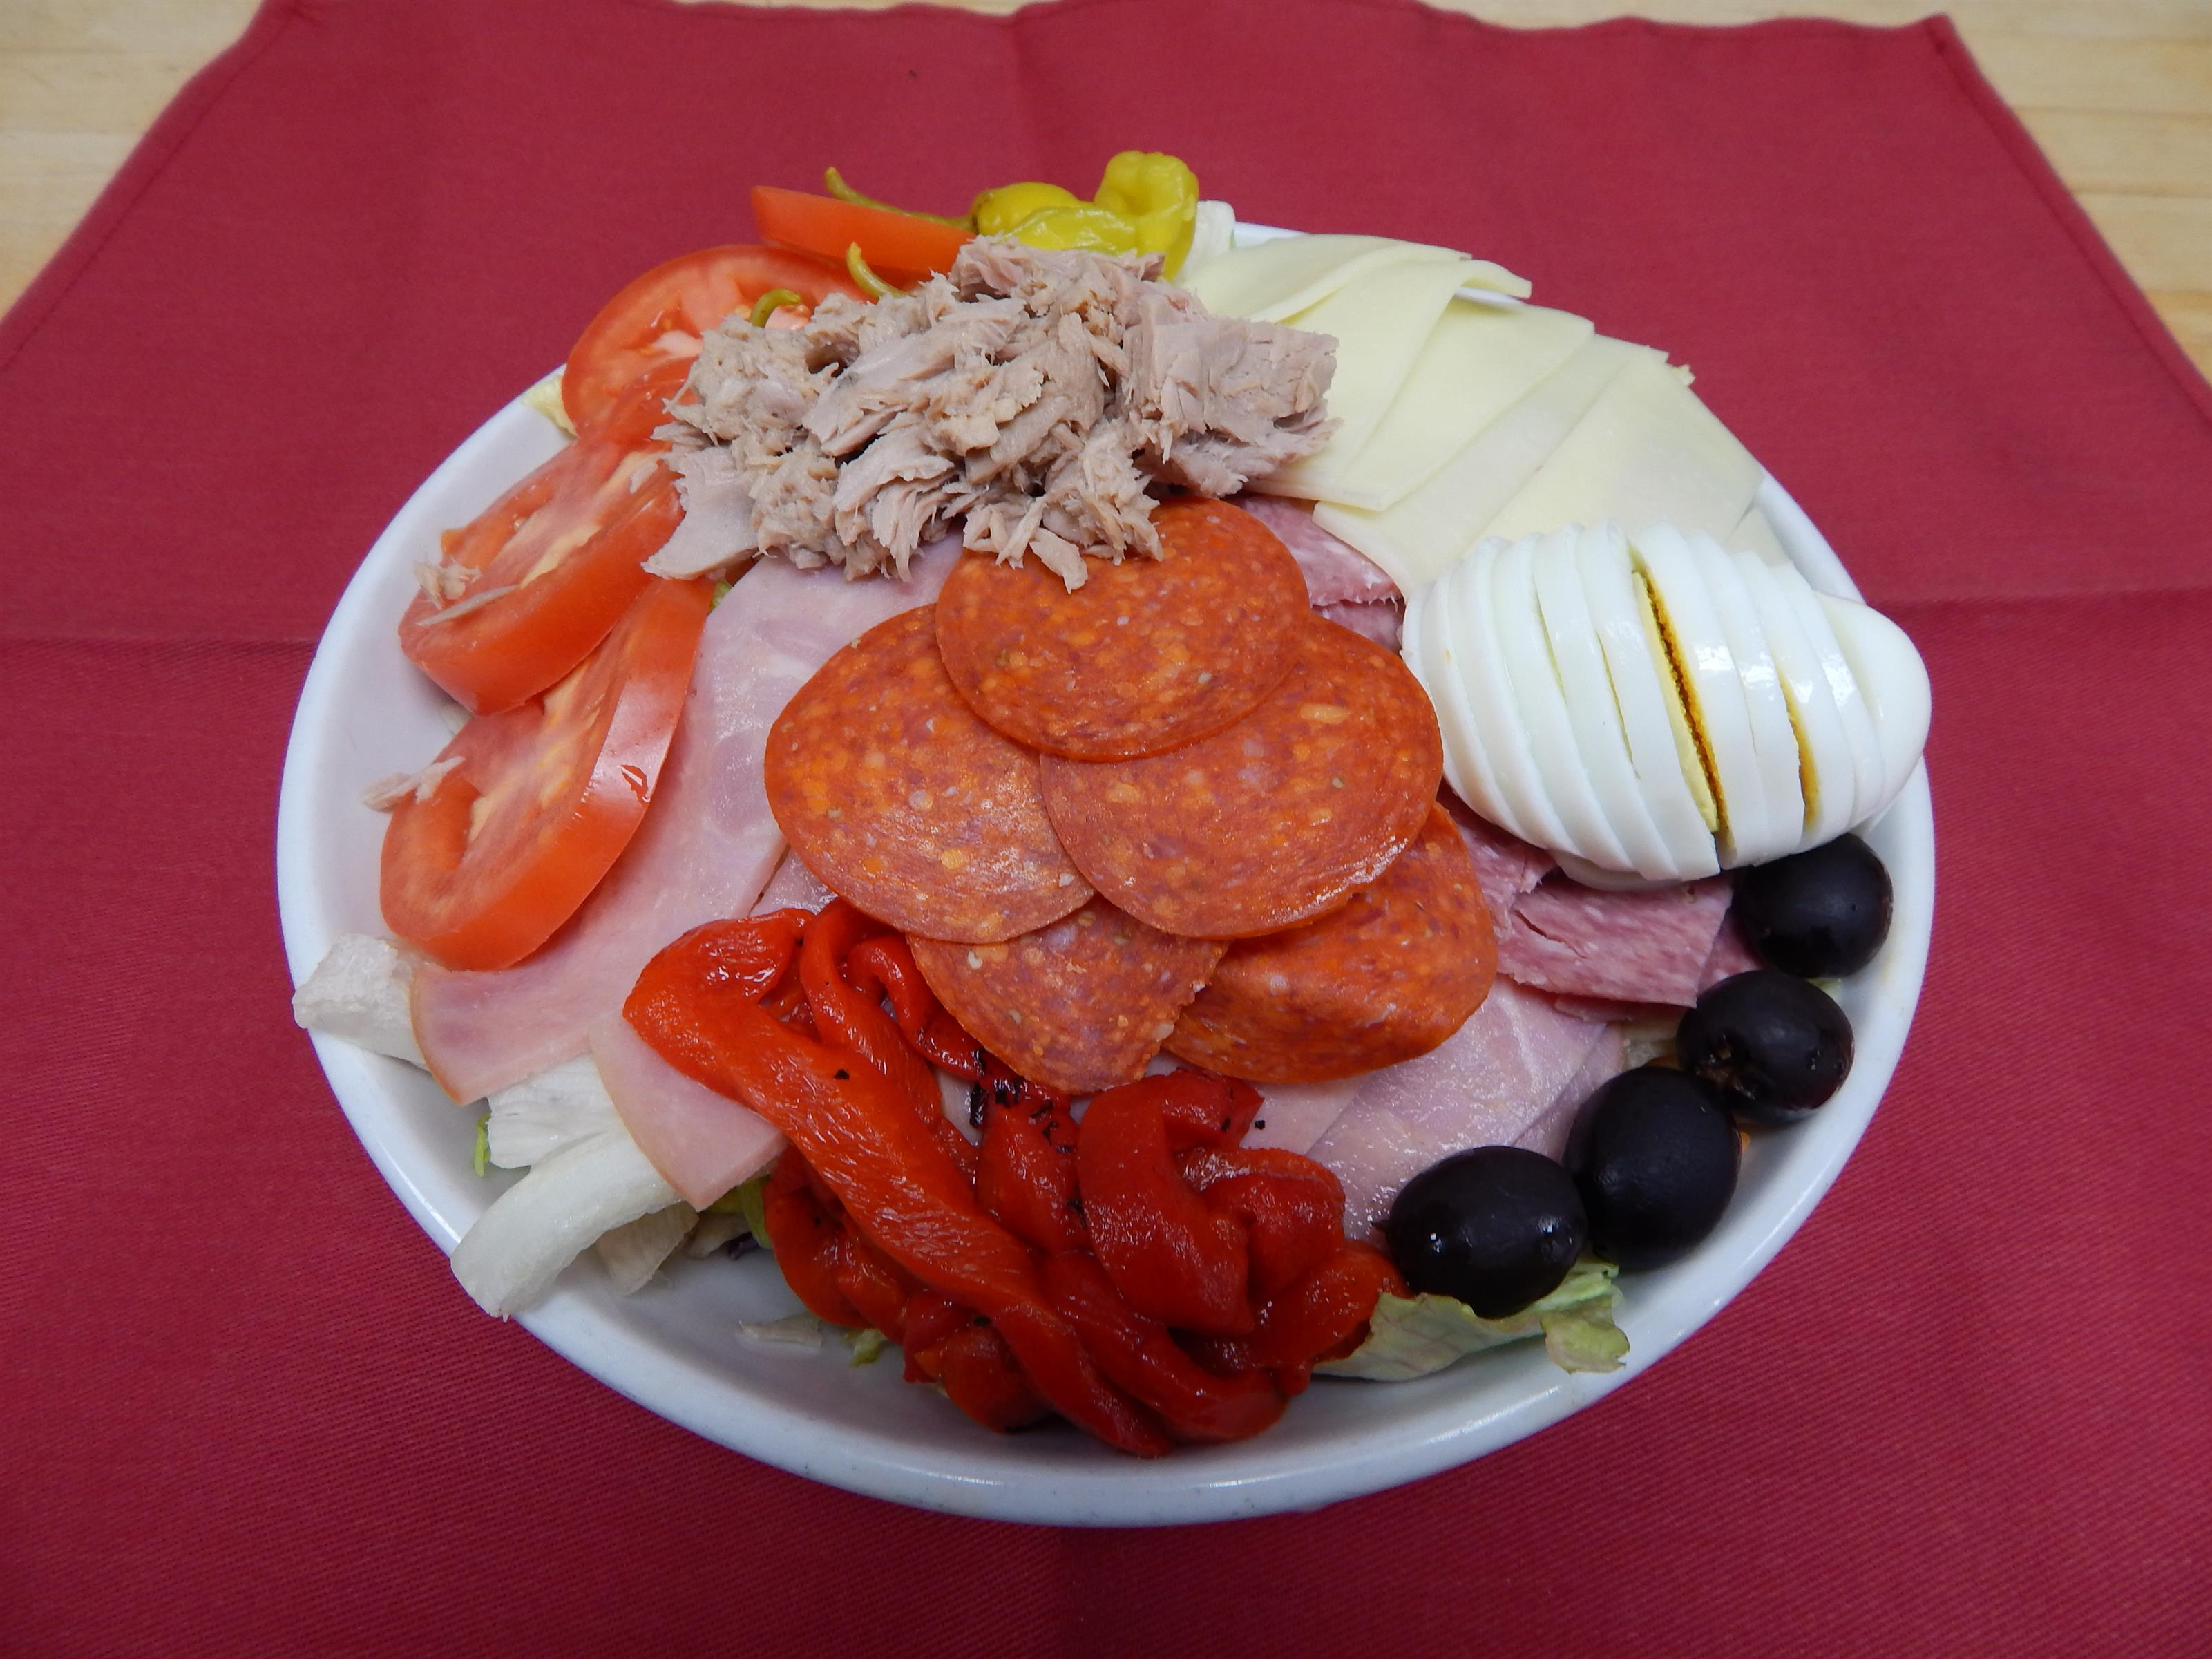 antipasto supreme with, Salami, Capacola, Provolone Cheese, tomatoes, black olives, pepperoncini's, hard boiled eggs, tuna fish and pepperoni.